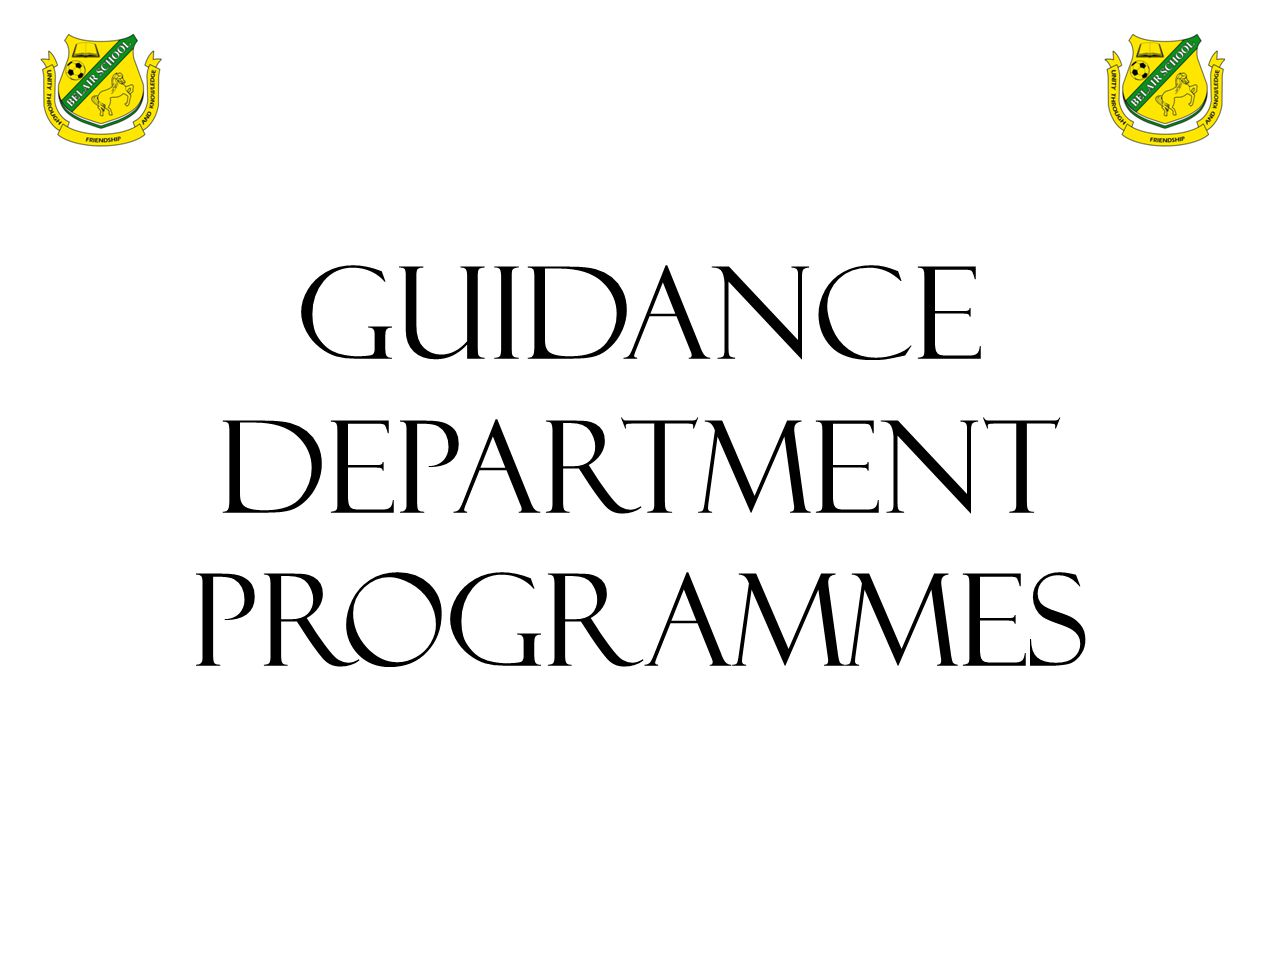 GUIDANCE DEPARTMENT PROGRAMMES